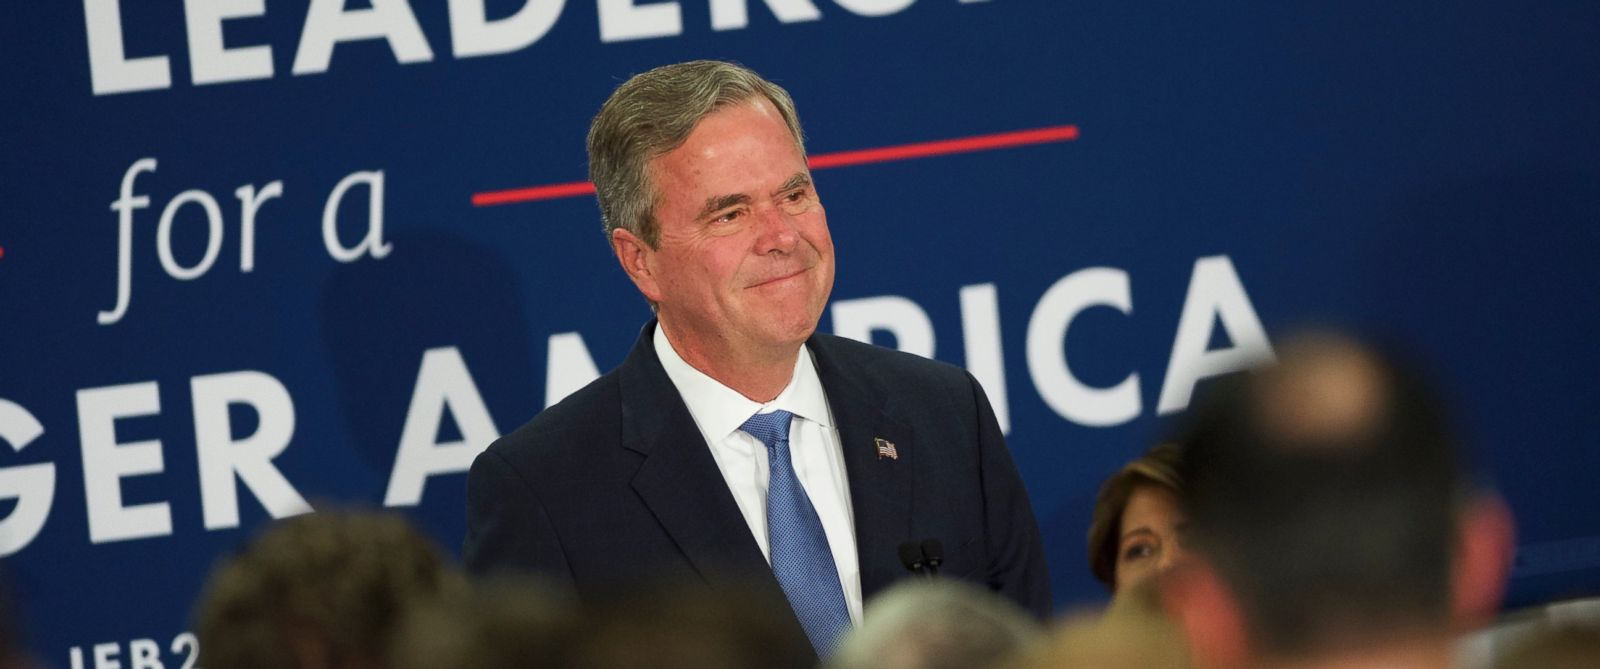 PHOTO: Jeb Bush reacts as he announces the suspension of his presidential campaign at an election night party at the Hilton Columbia Center in Columbia, S.C., Feb. 20, 2016.